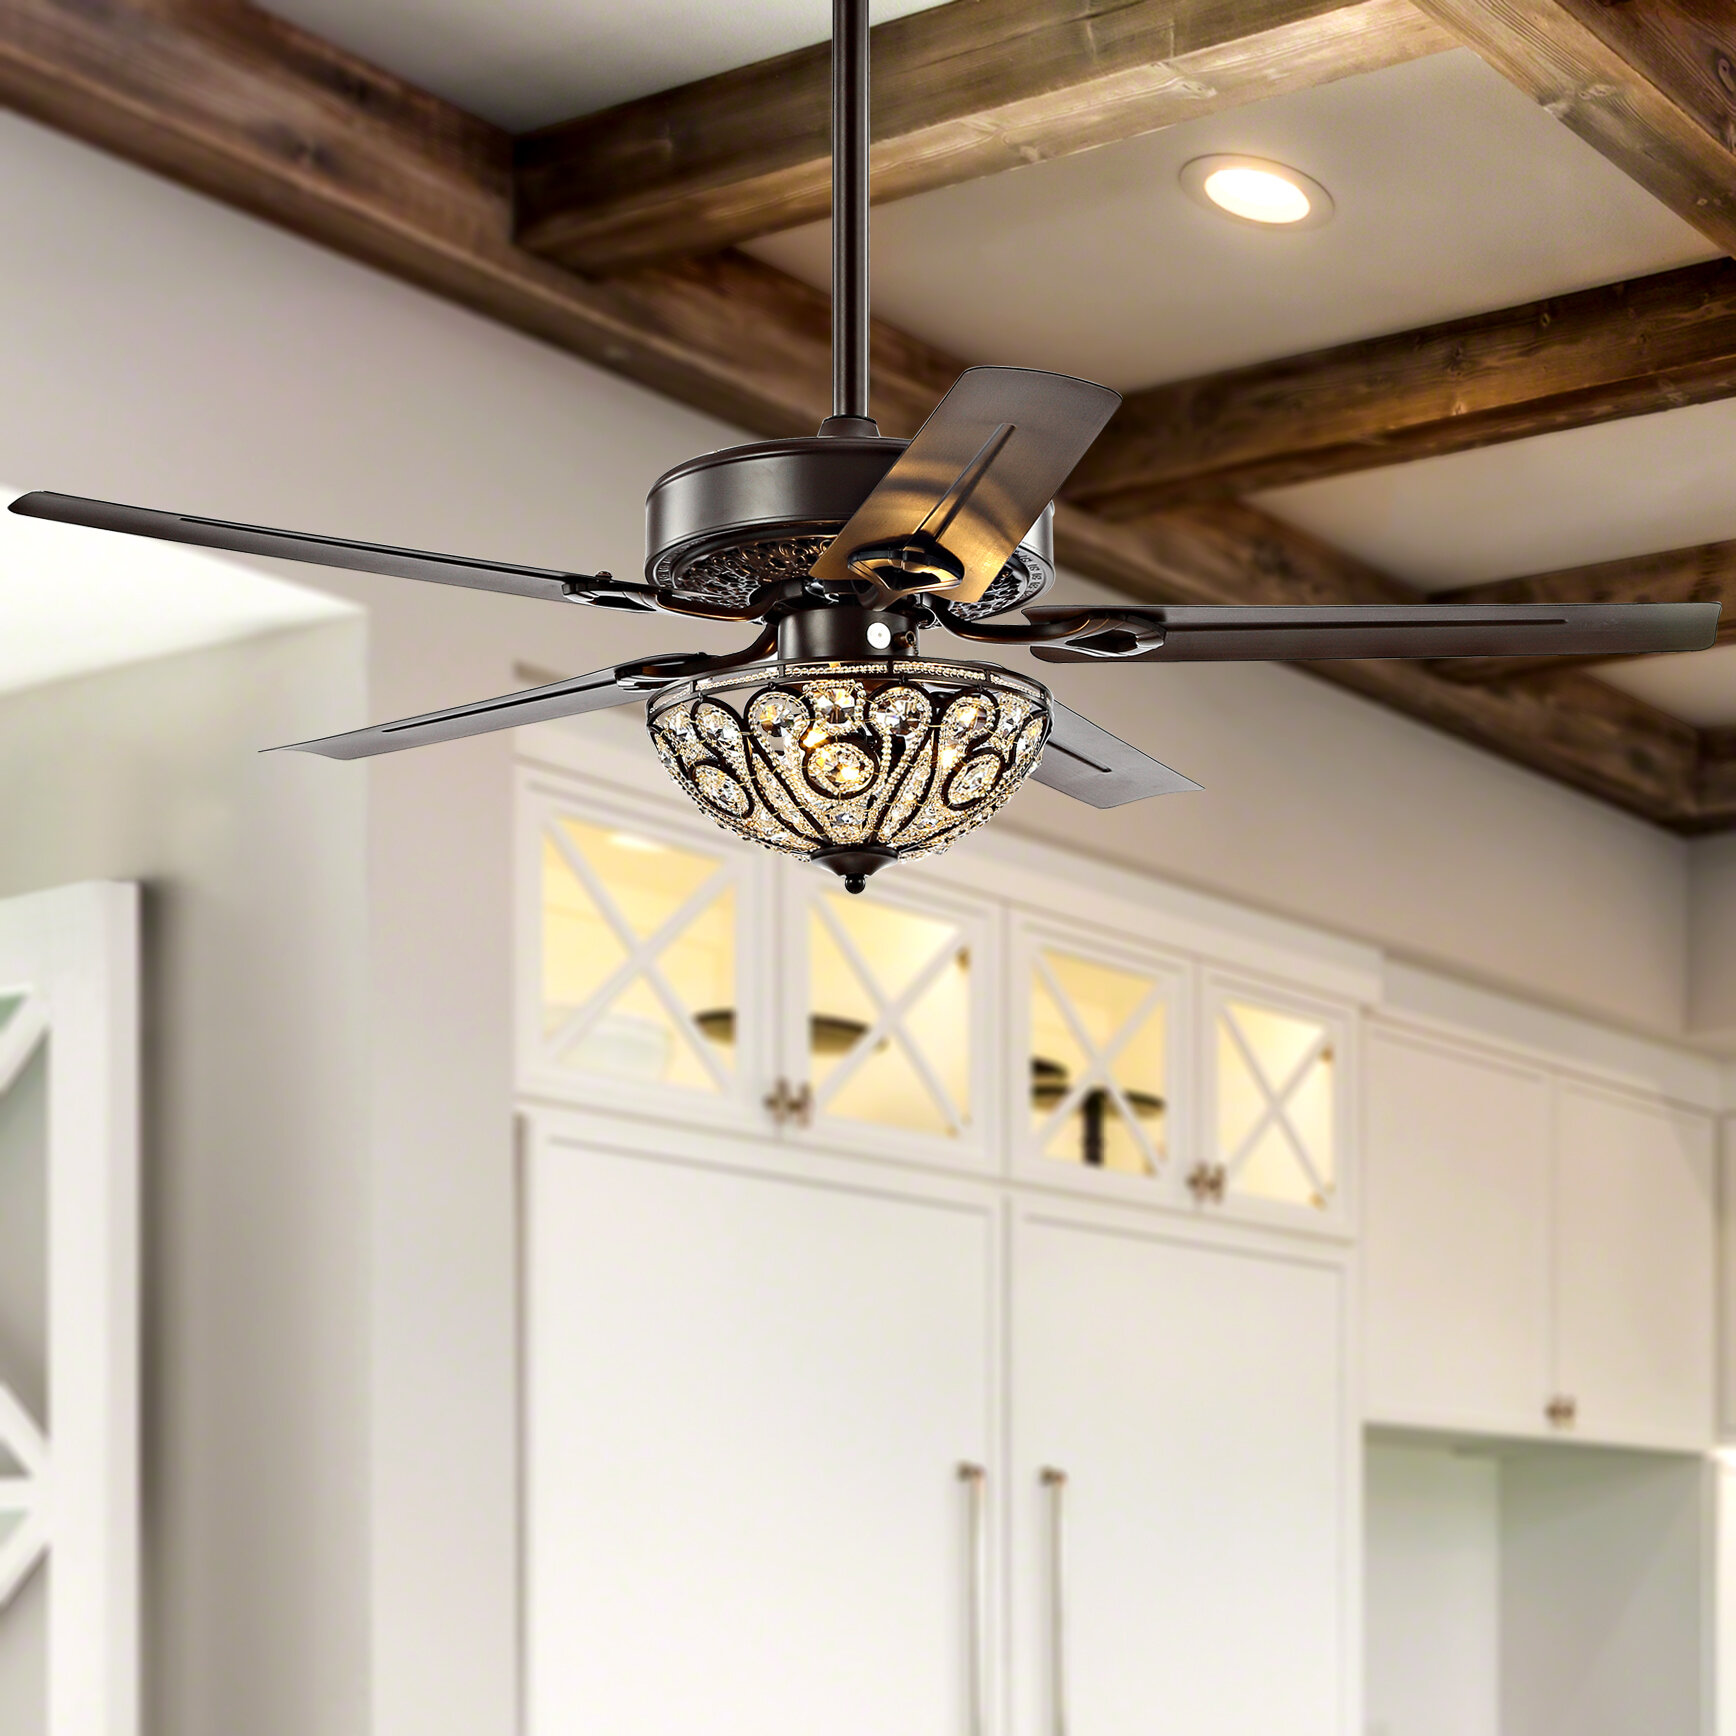 Rosdorf Park 48 Chicago 5 Blade Crystal Ceiling Fan With Remote Control And Light Kit Included Reviews Wayfair